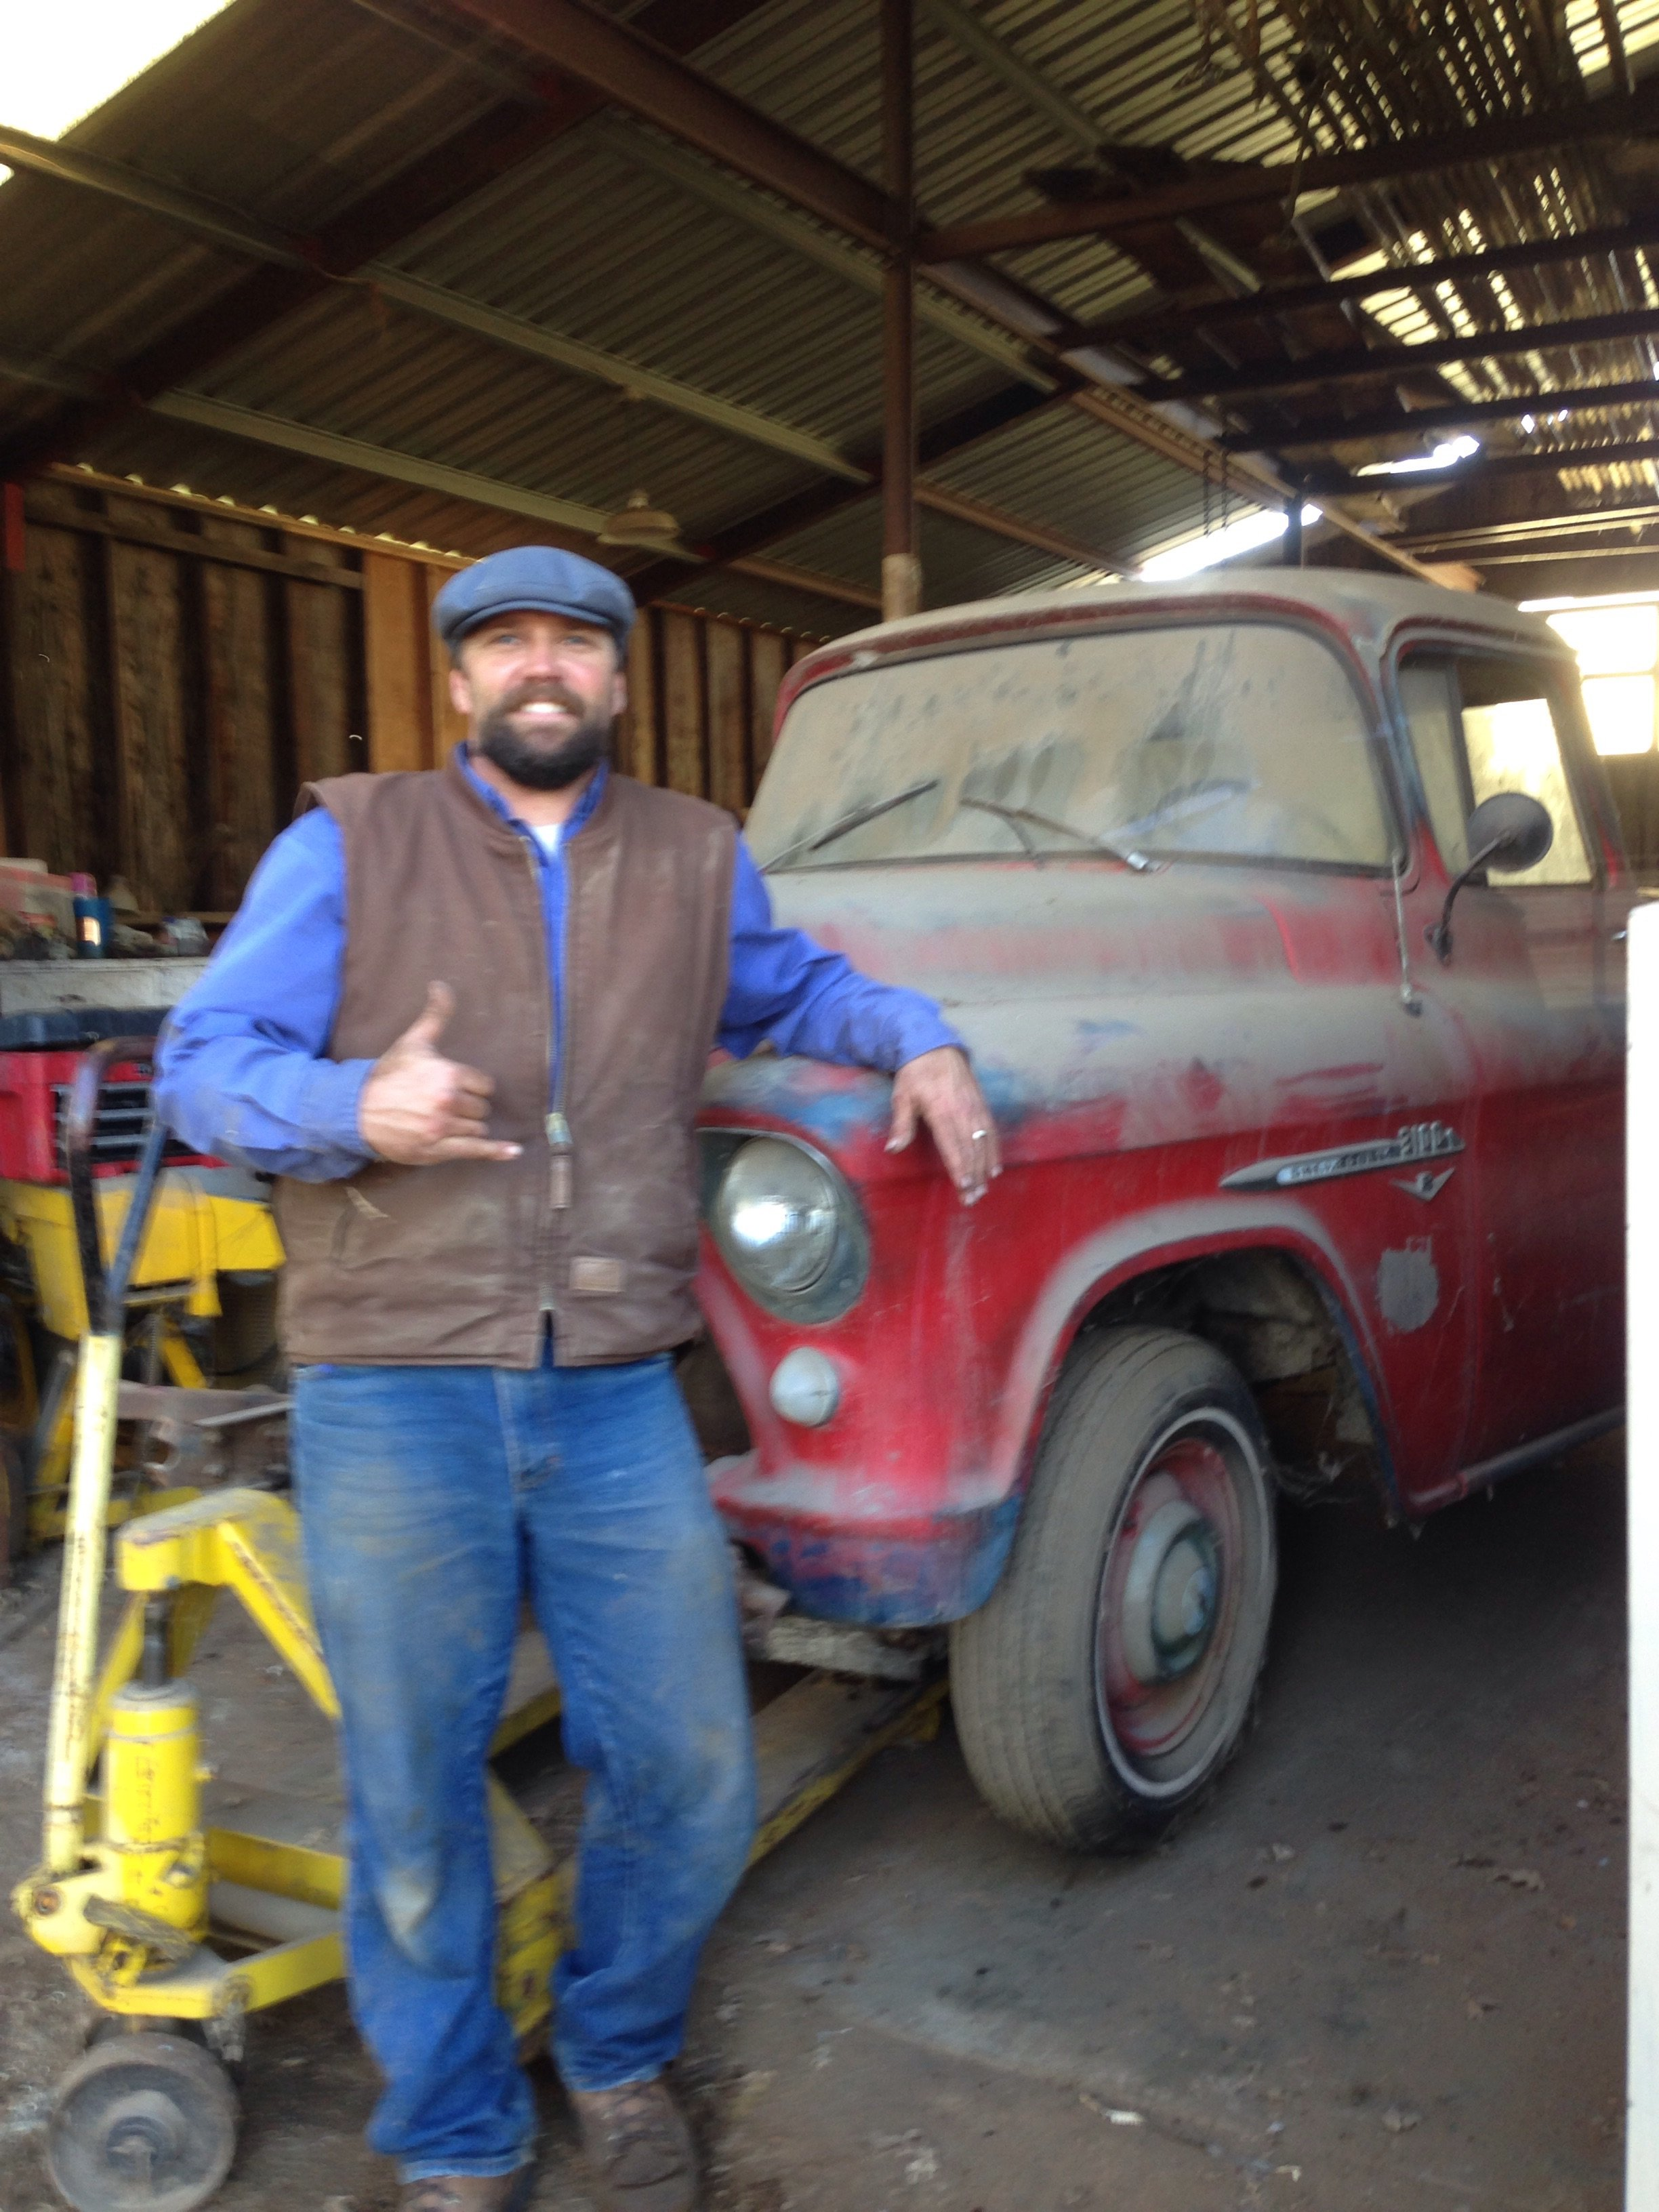 Projects - My barn find 1955 CHevy truck 265 hydromatic ...